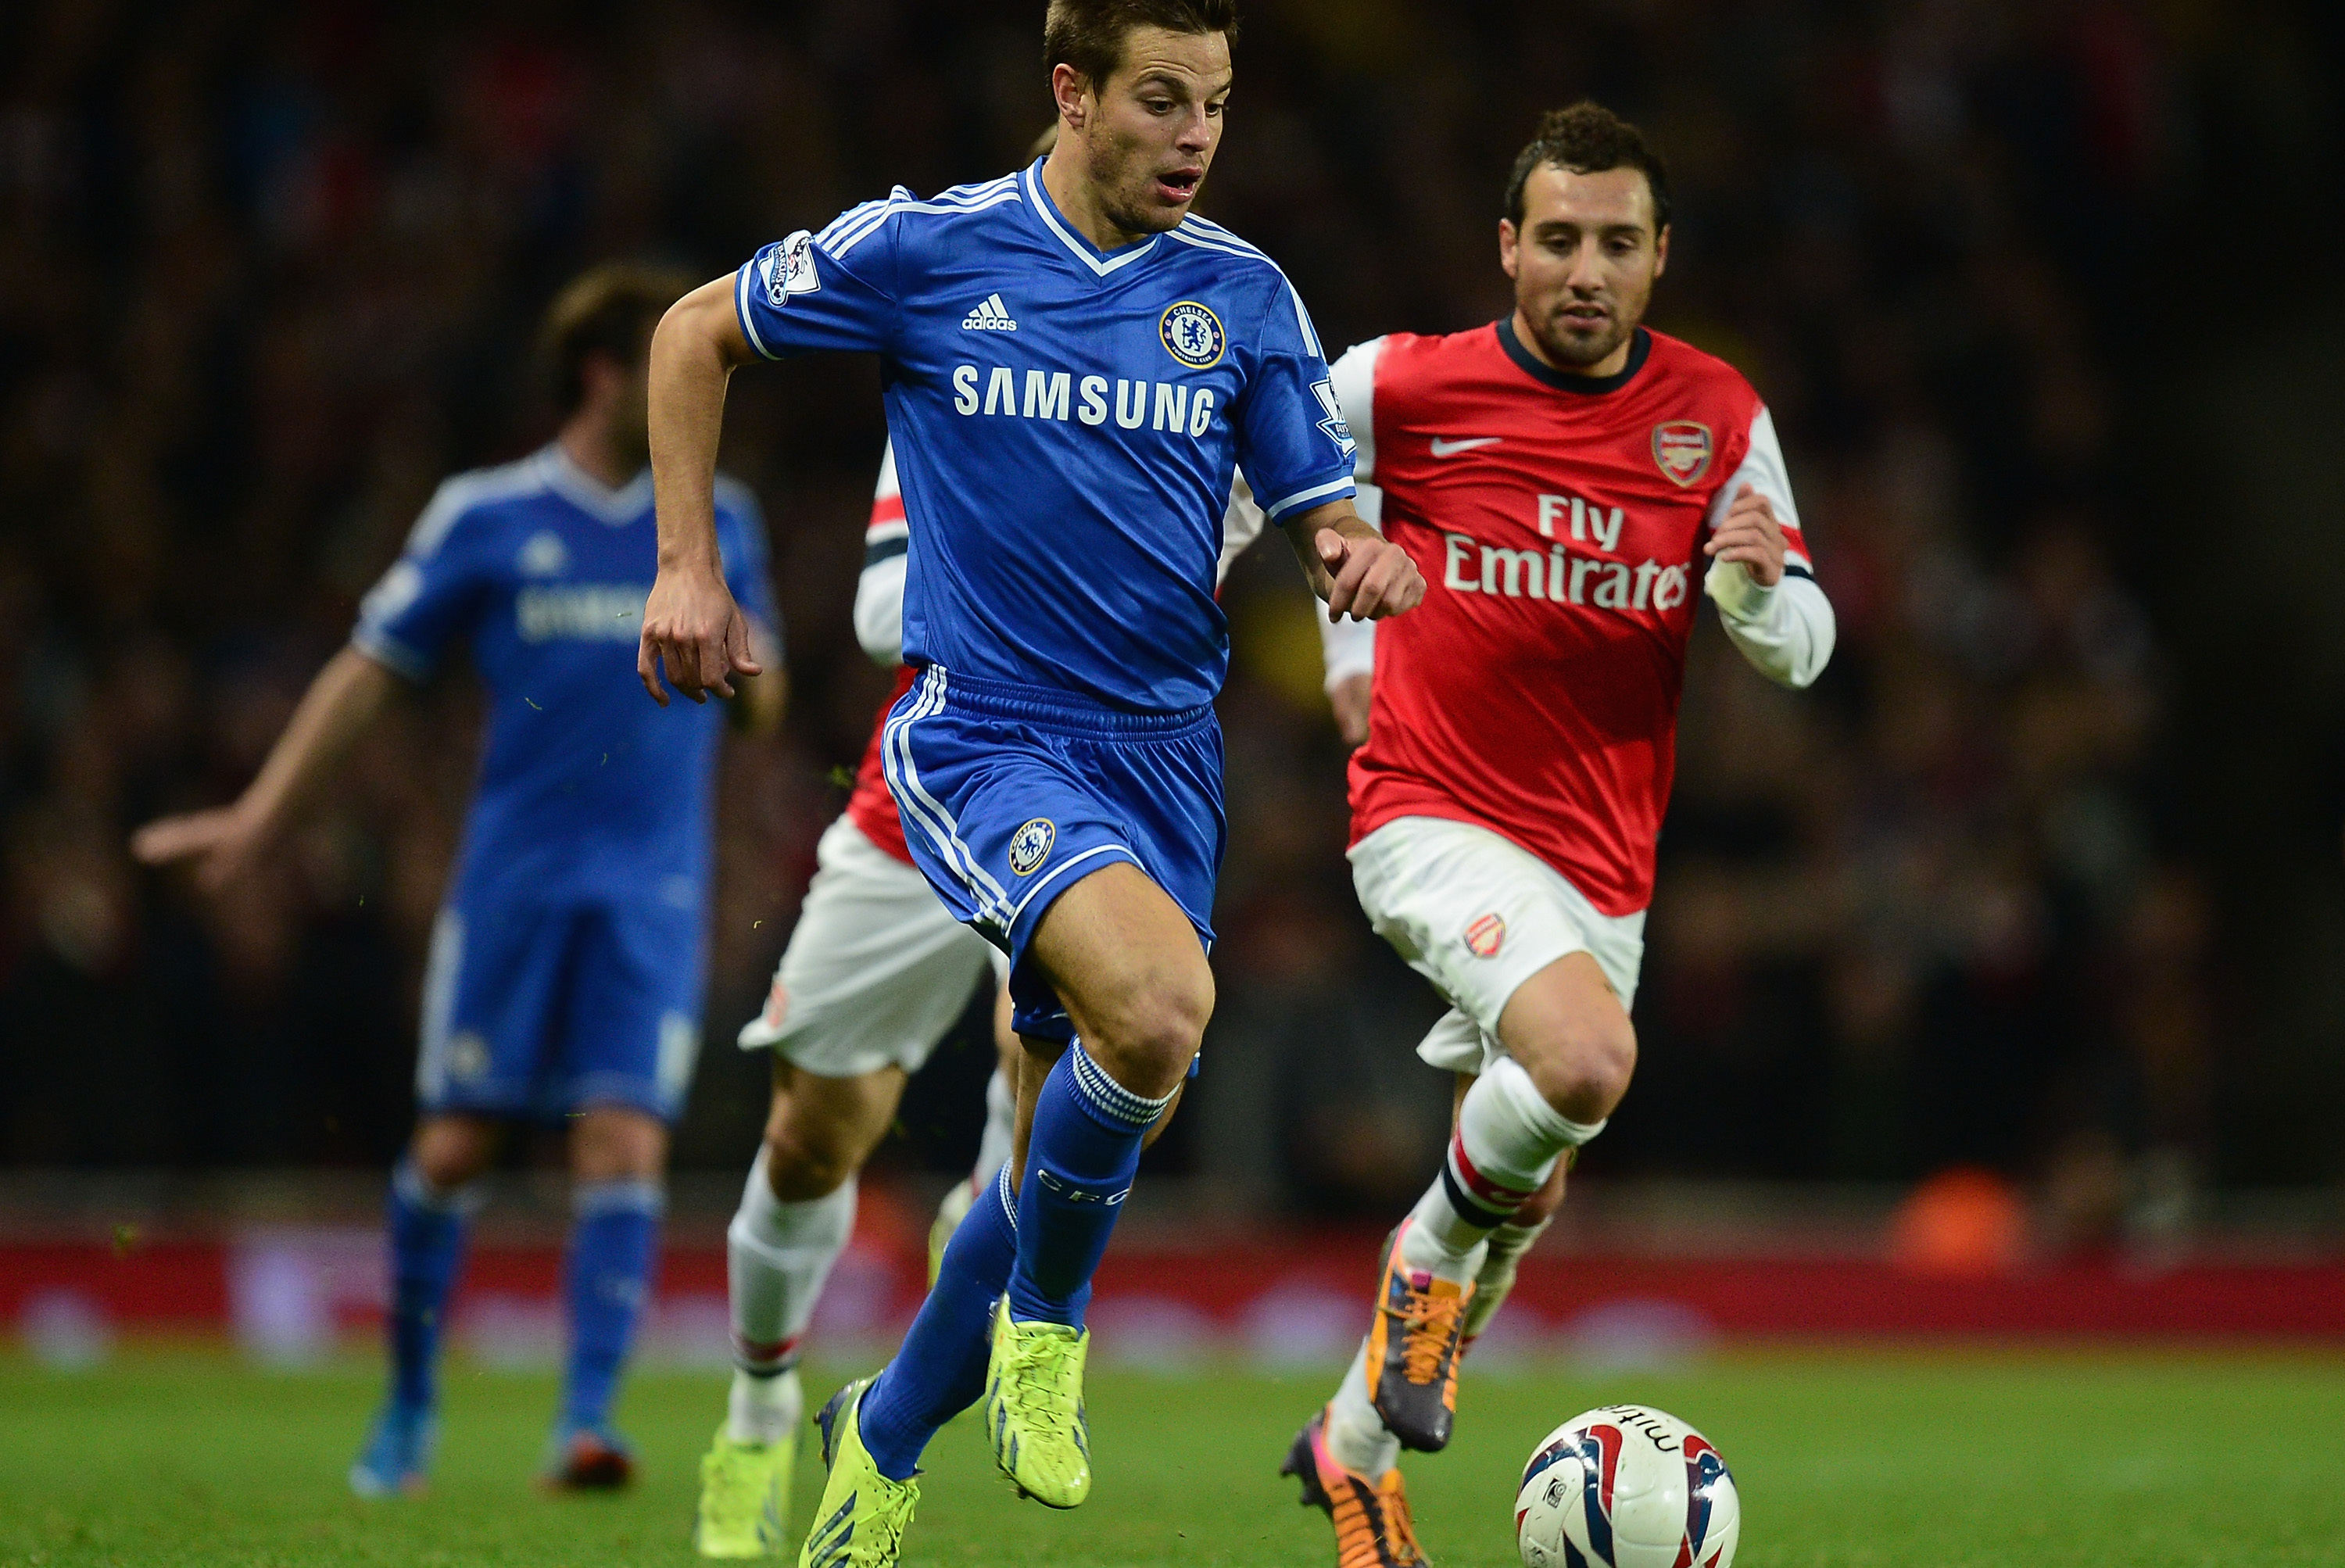 Chelsea arsenal betting predictions nfl rochdale v wigan betting preview nfl